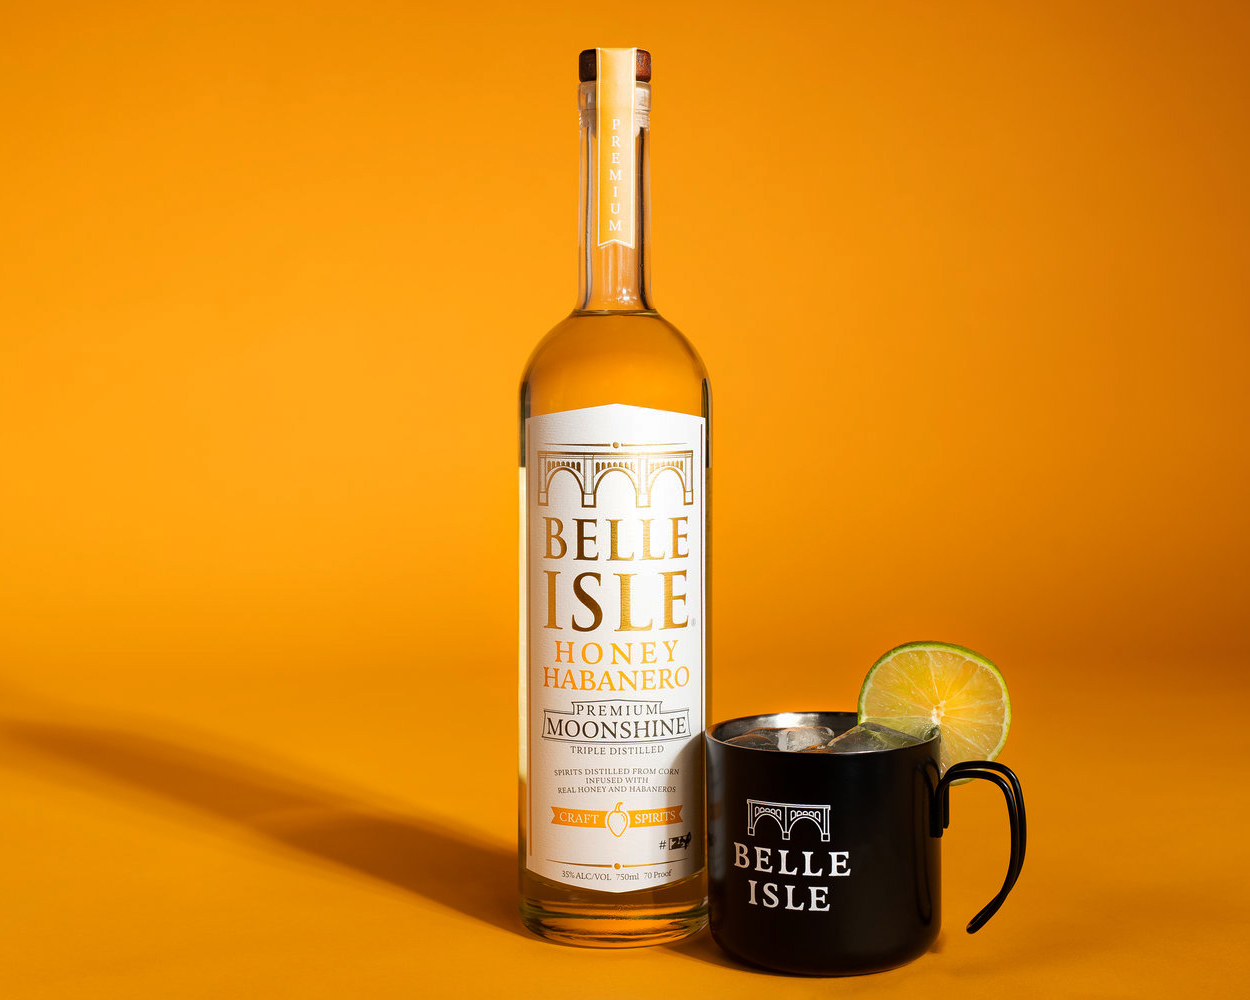 One mule to rule them all.